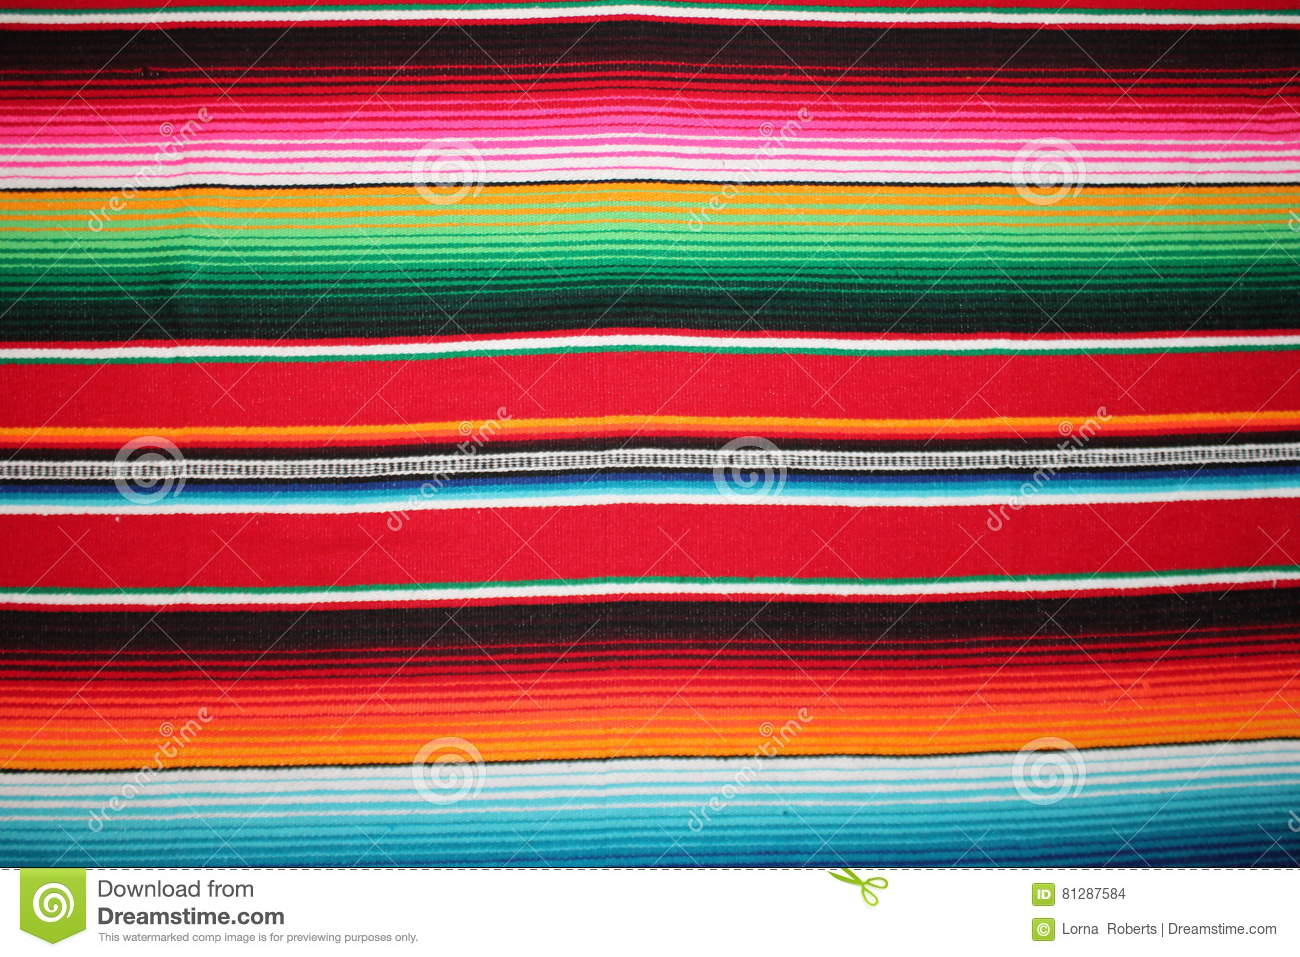 poncho Mexican mexico background traditional cinco de mayo rug ponchos fiesta background with stripes